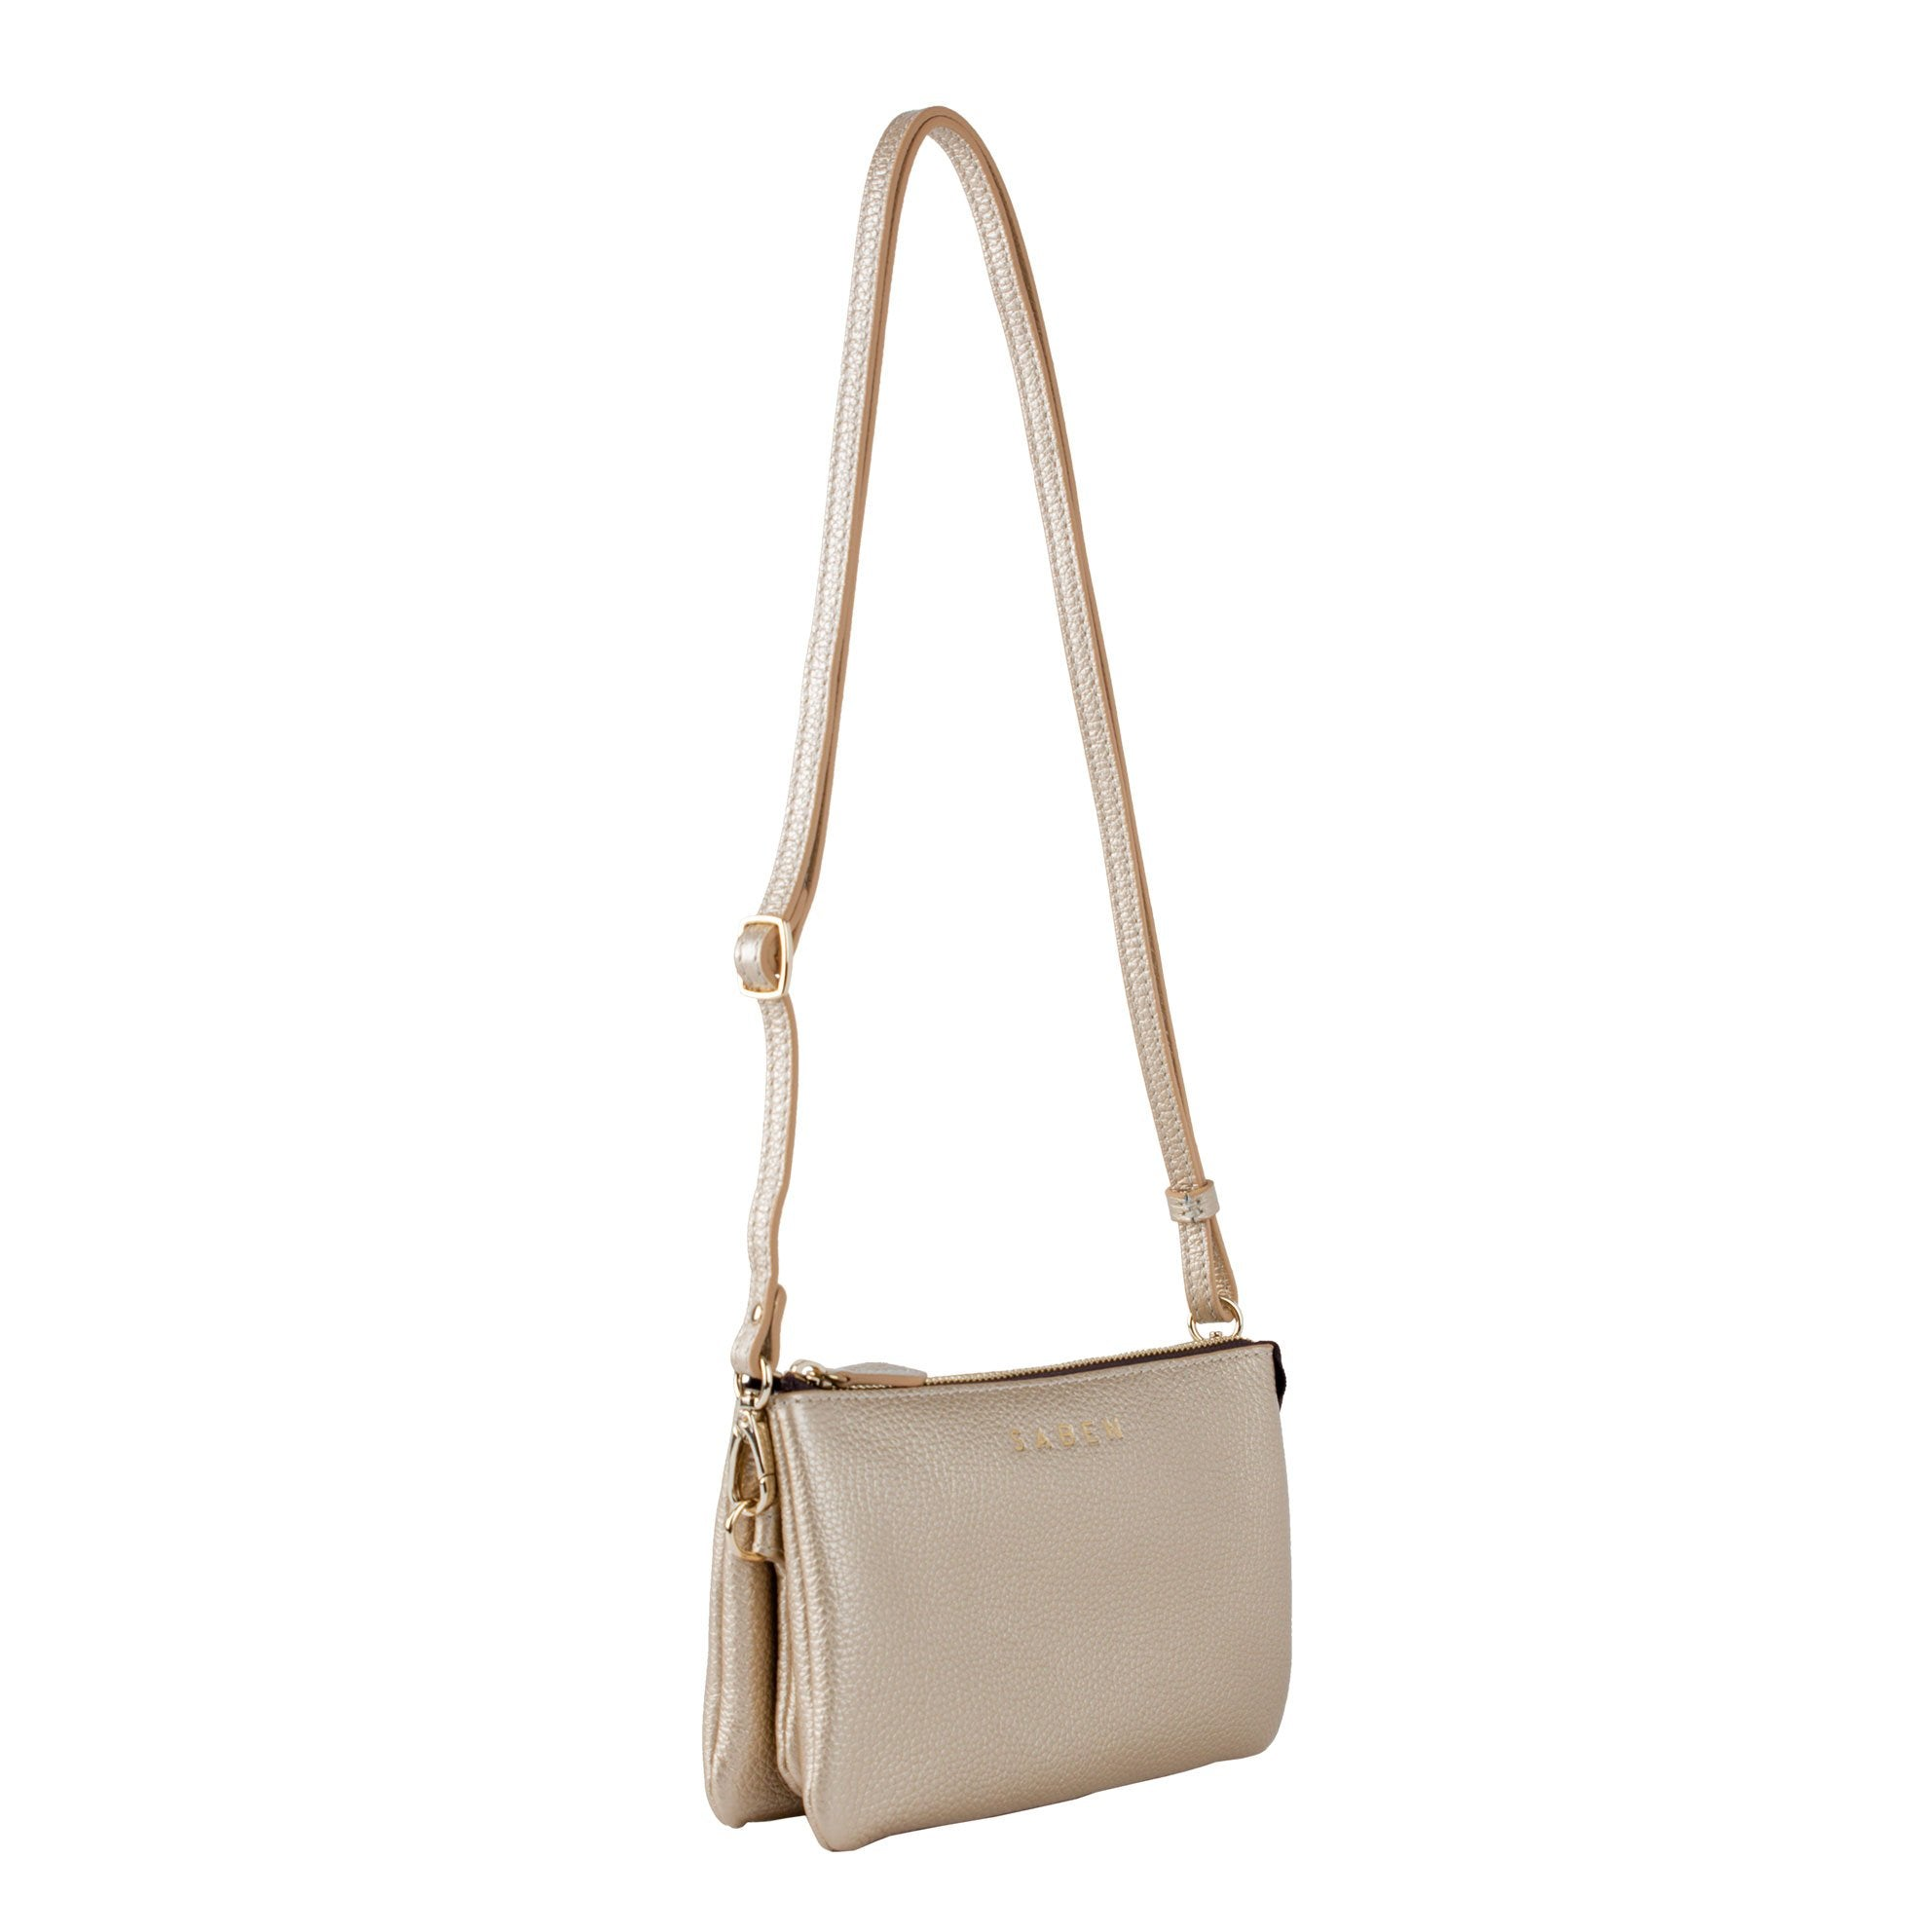 Tilly Crossbody Bag / Champagne Metallic